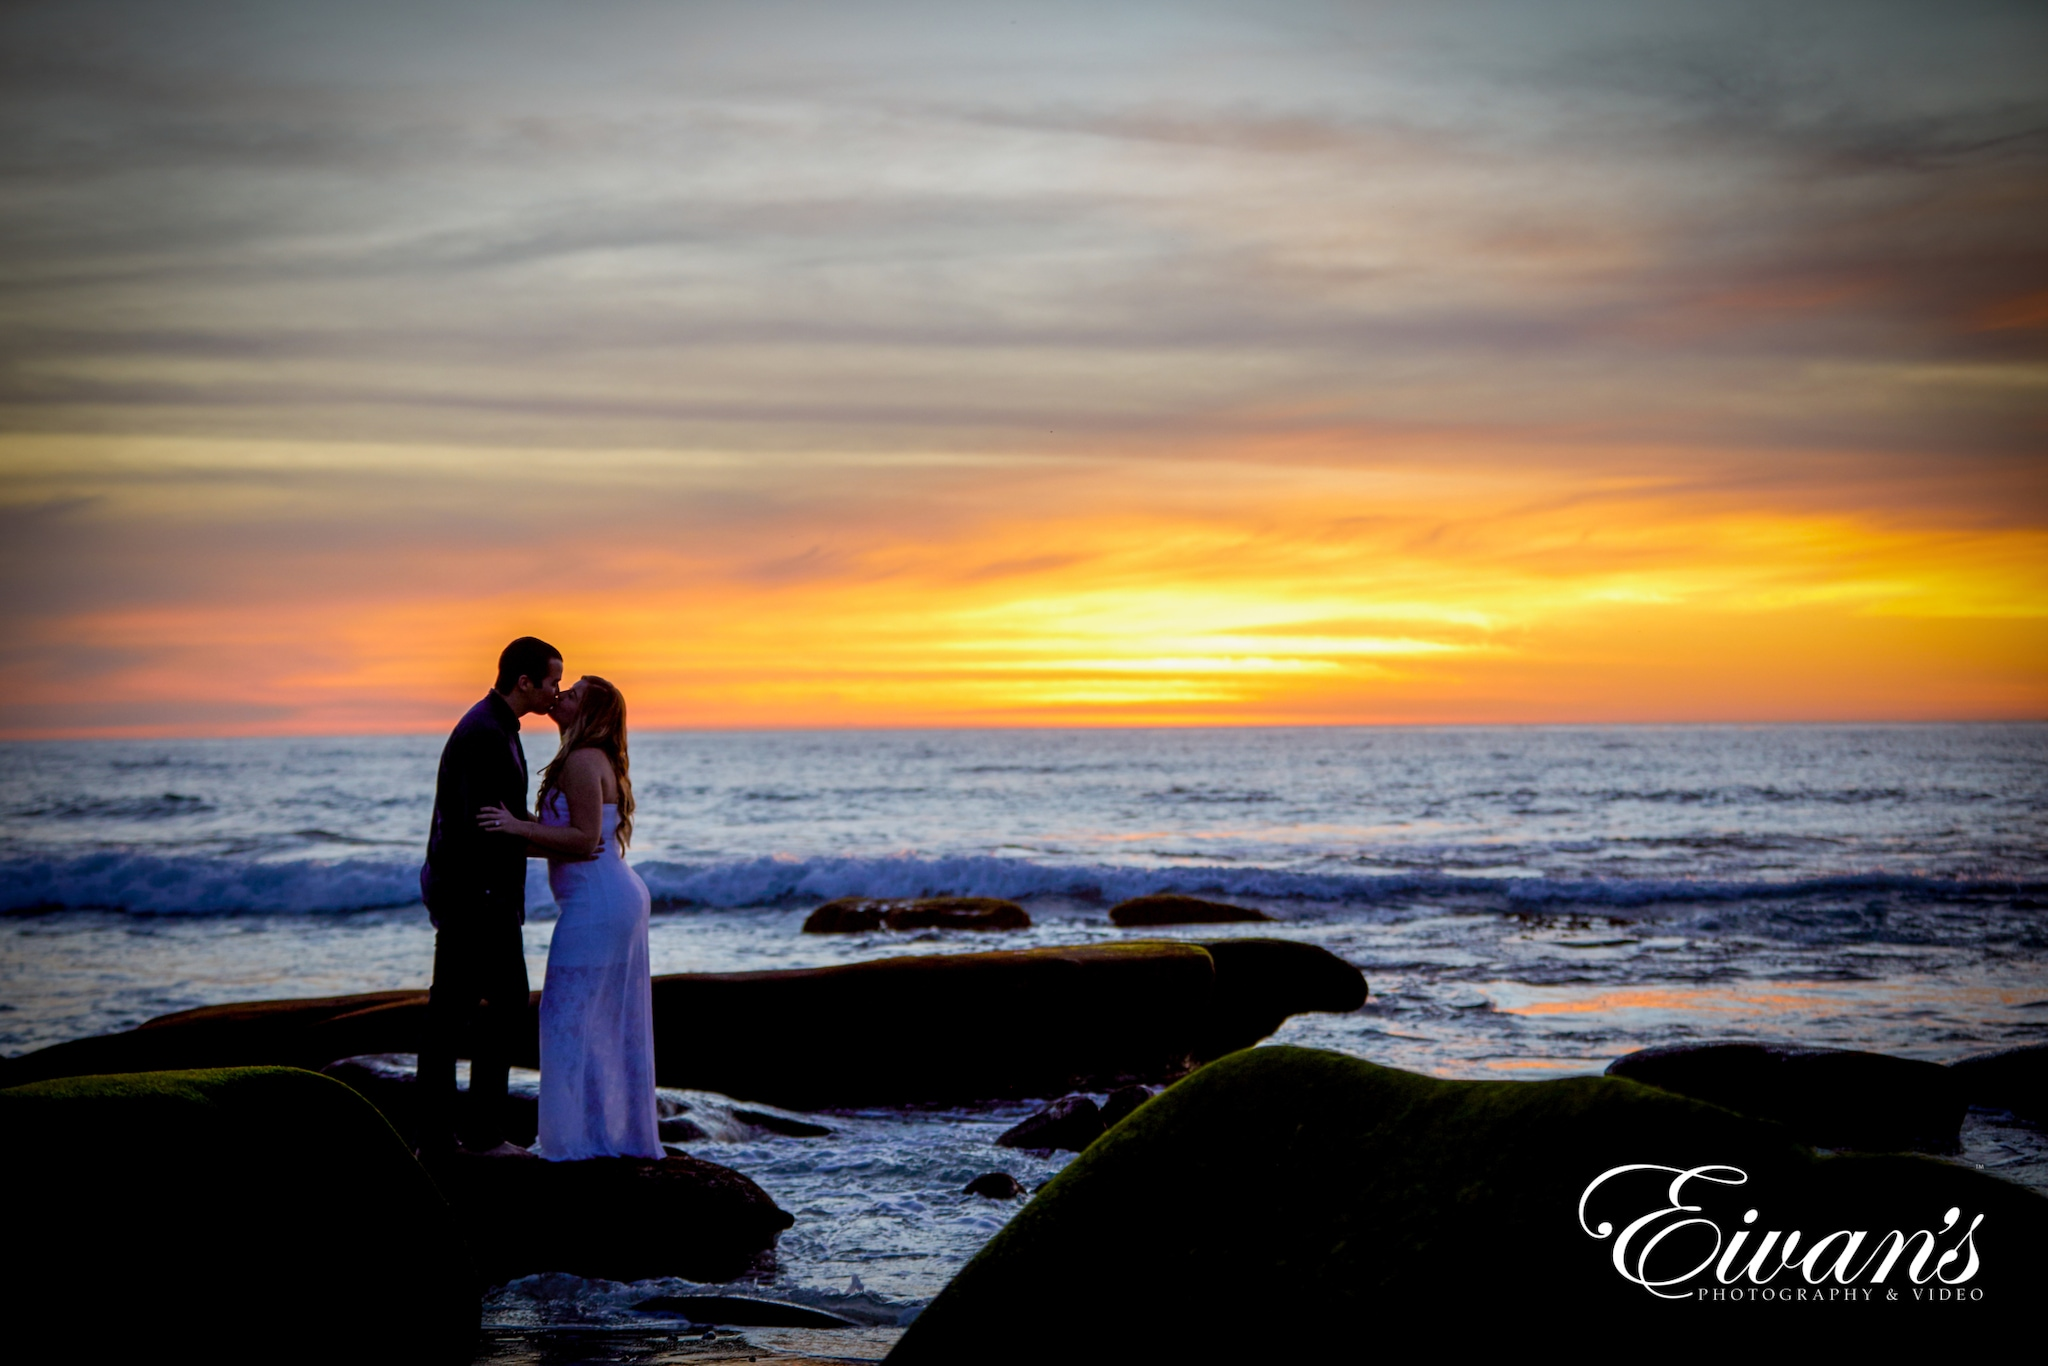 image of a man and woman near a sunset